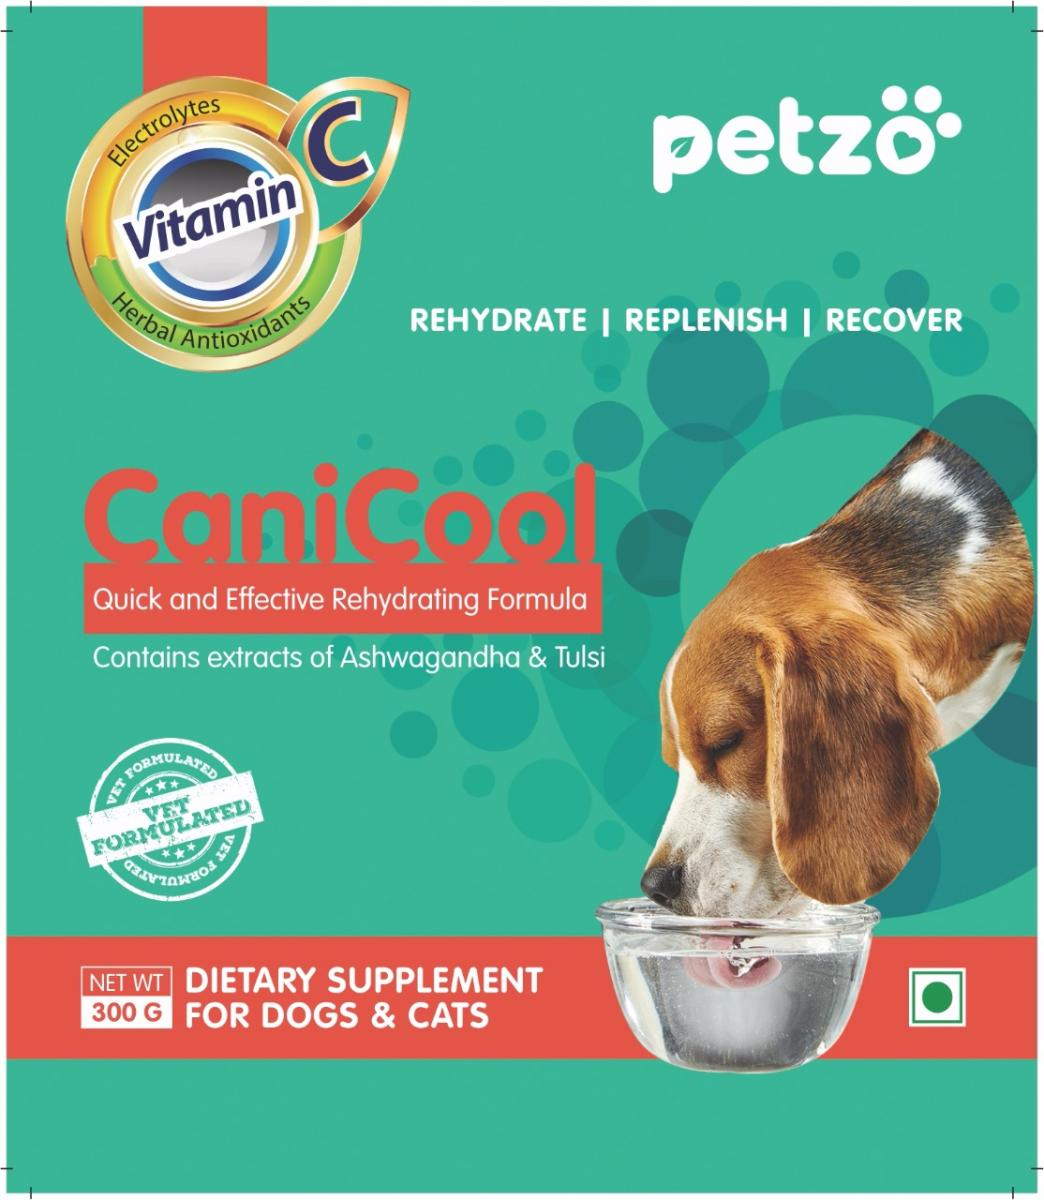 Petzo Canicool Re-Hydration & Anti Stress supplement (ORS Replacer) Chicken Flavor - 300 gm